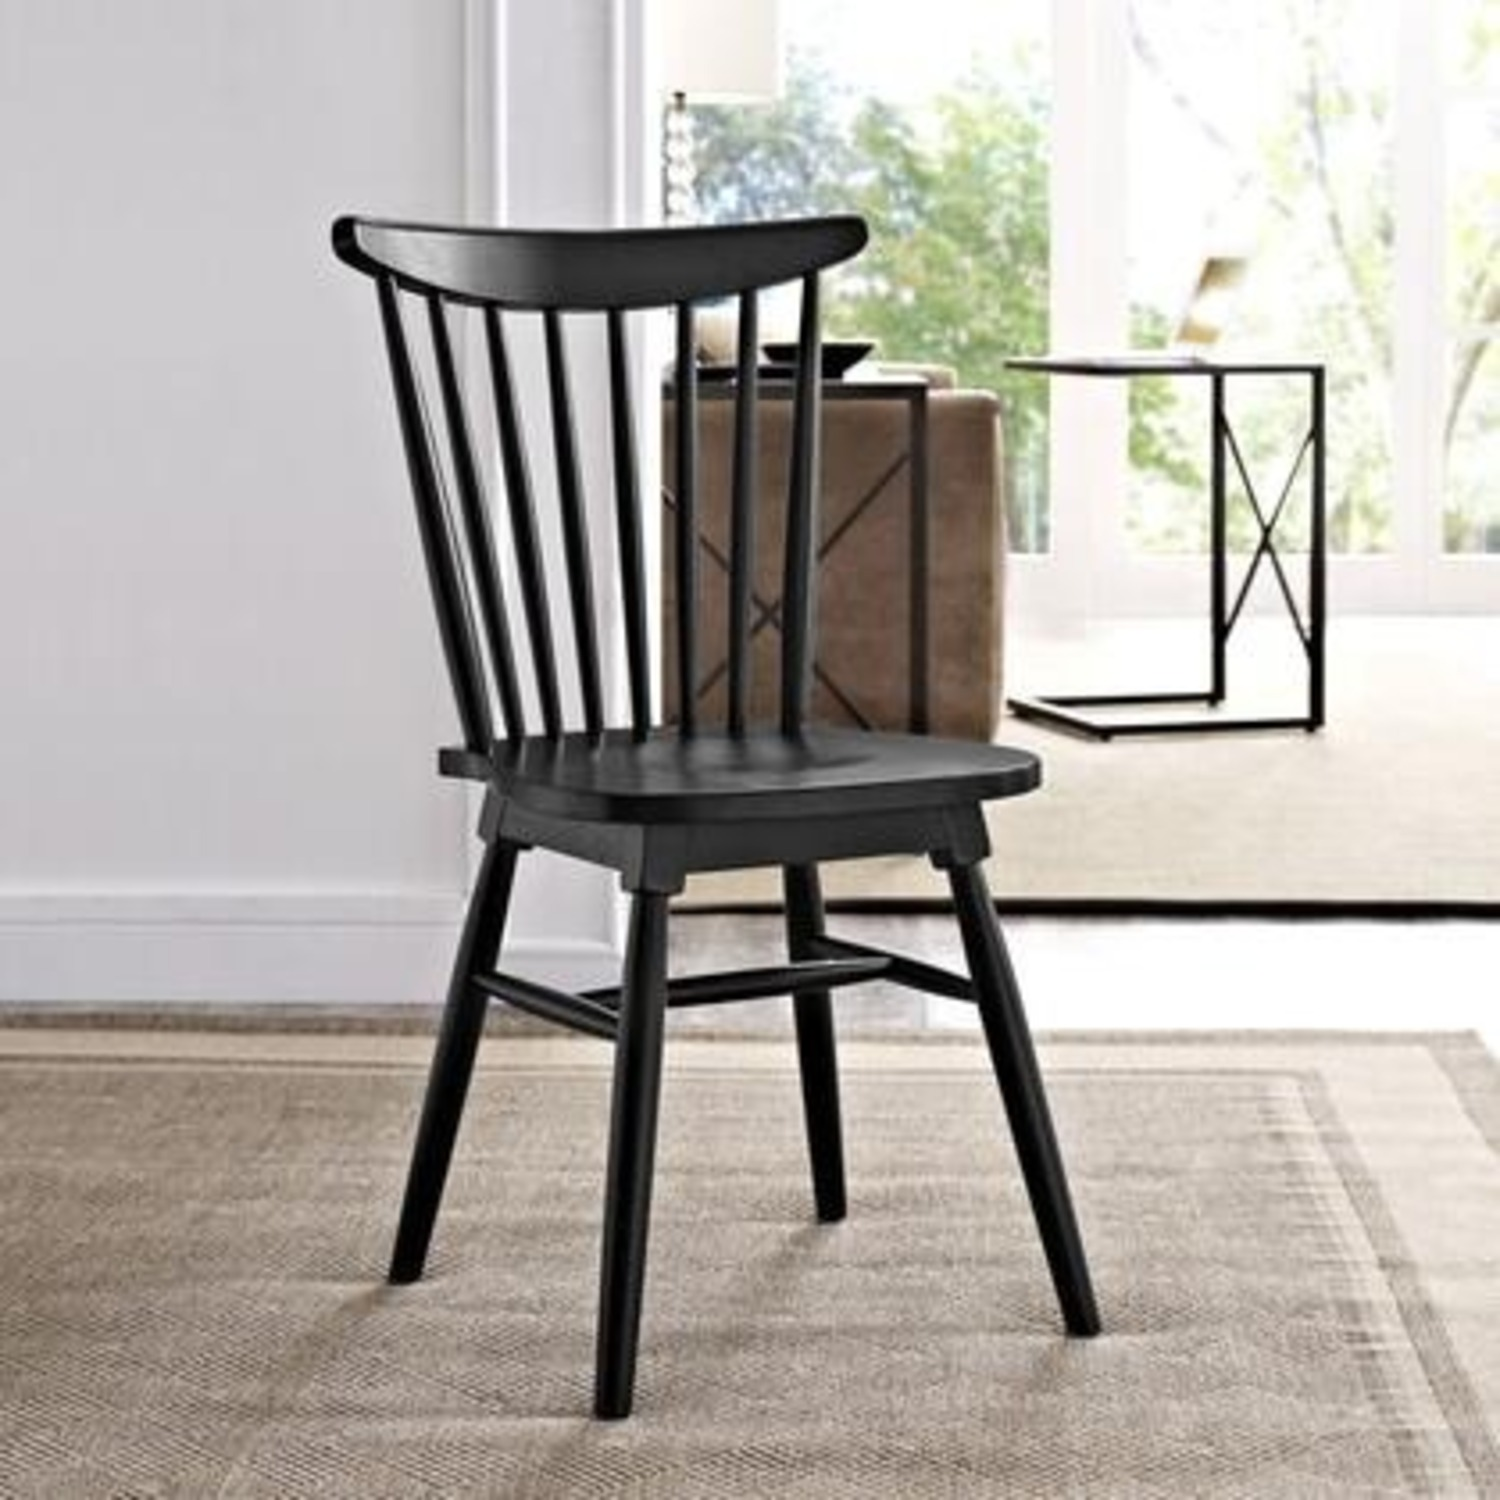 Contemporary Dining Chair In Black Elm Wood Finish - image-3